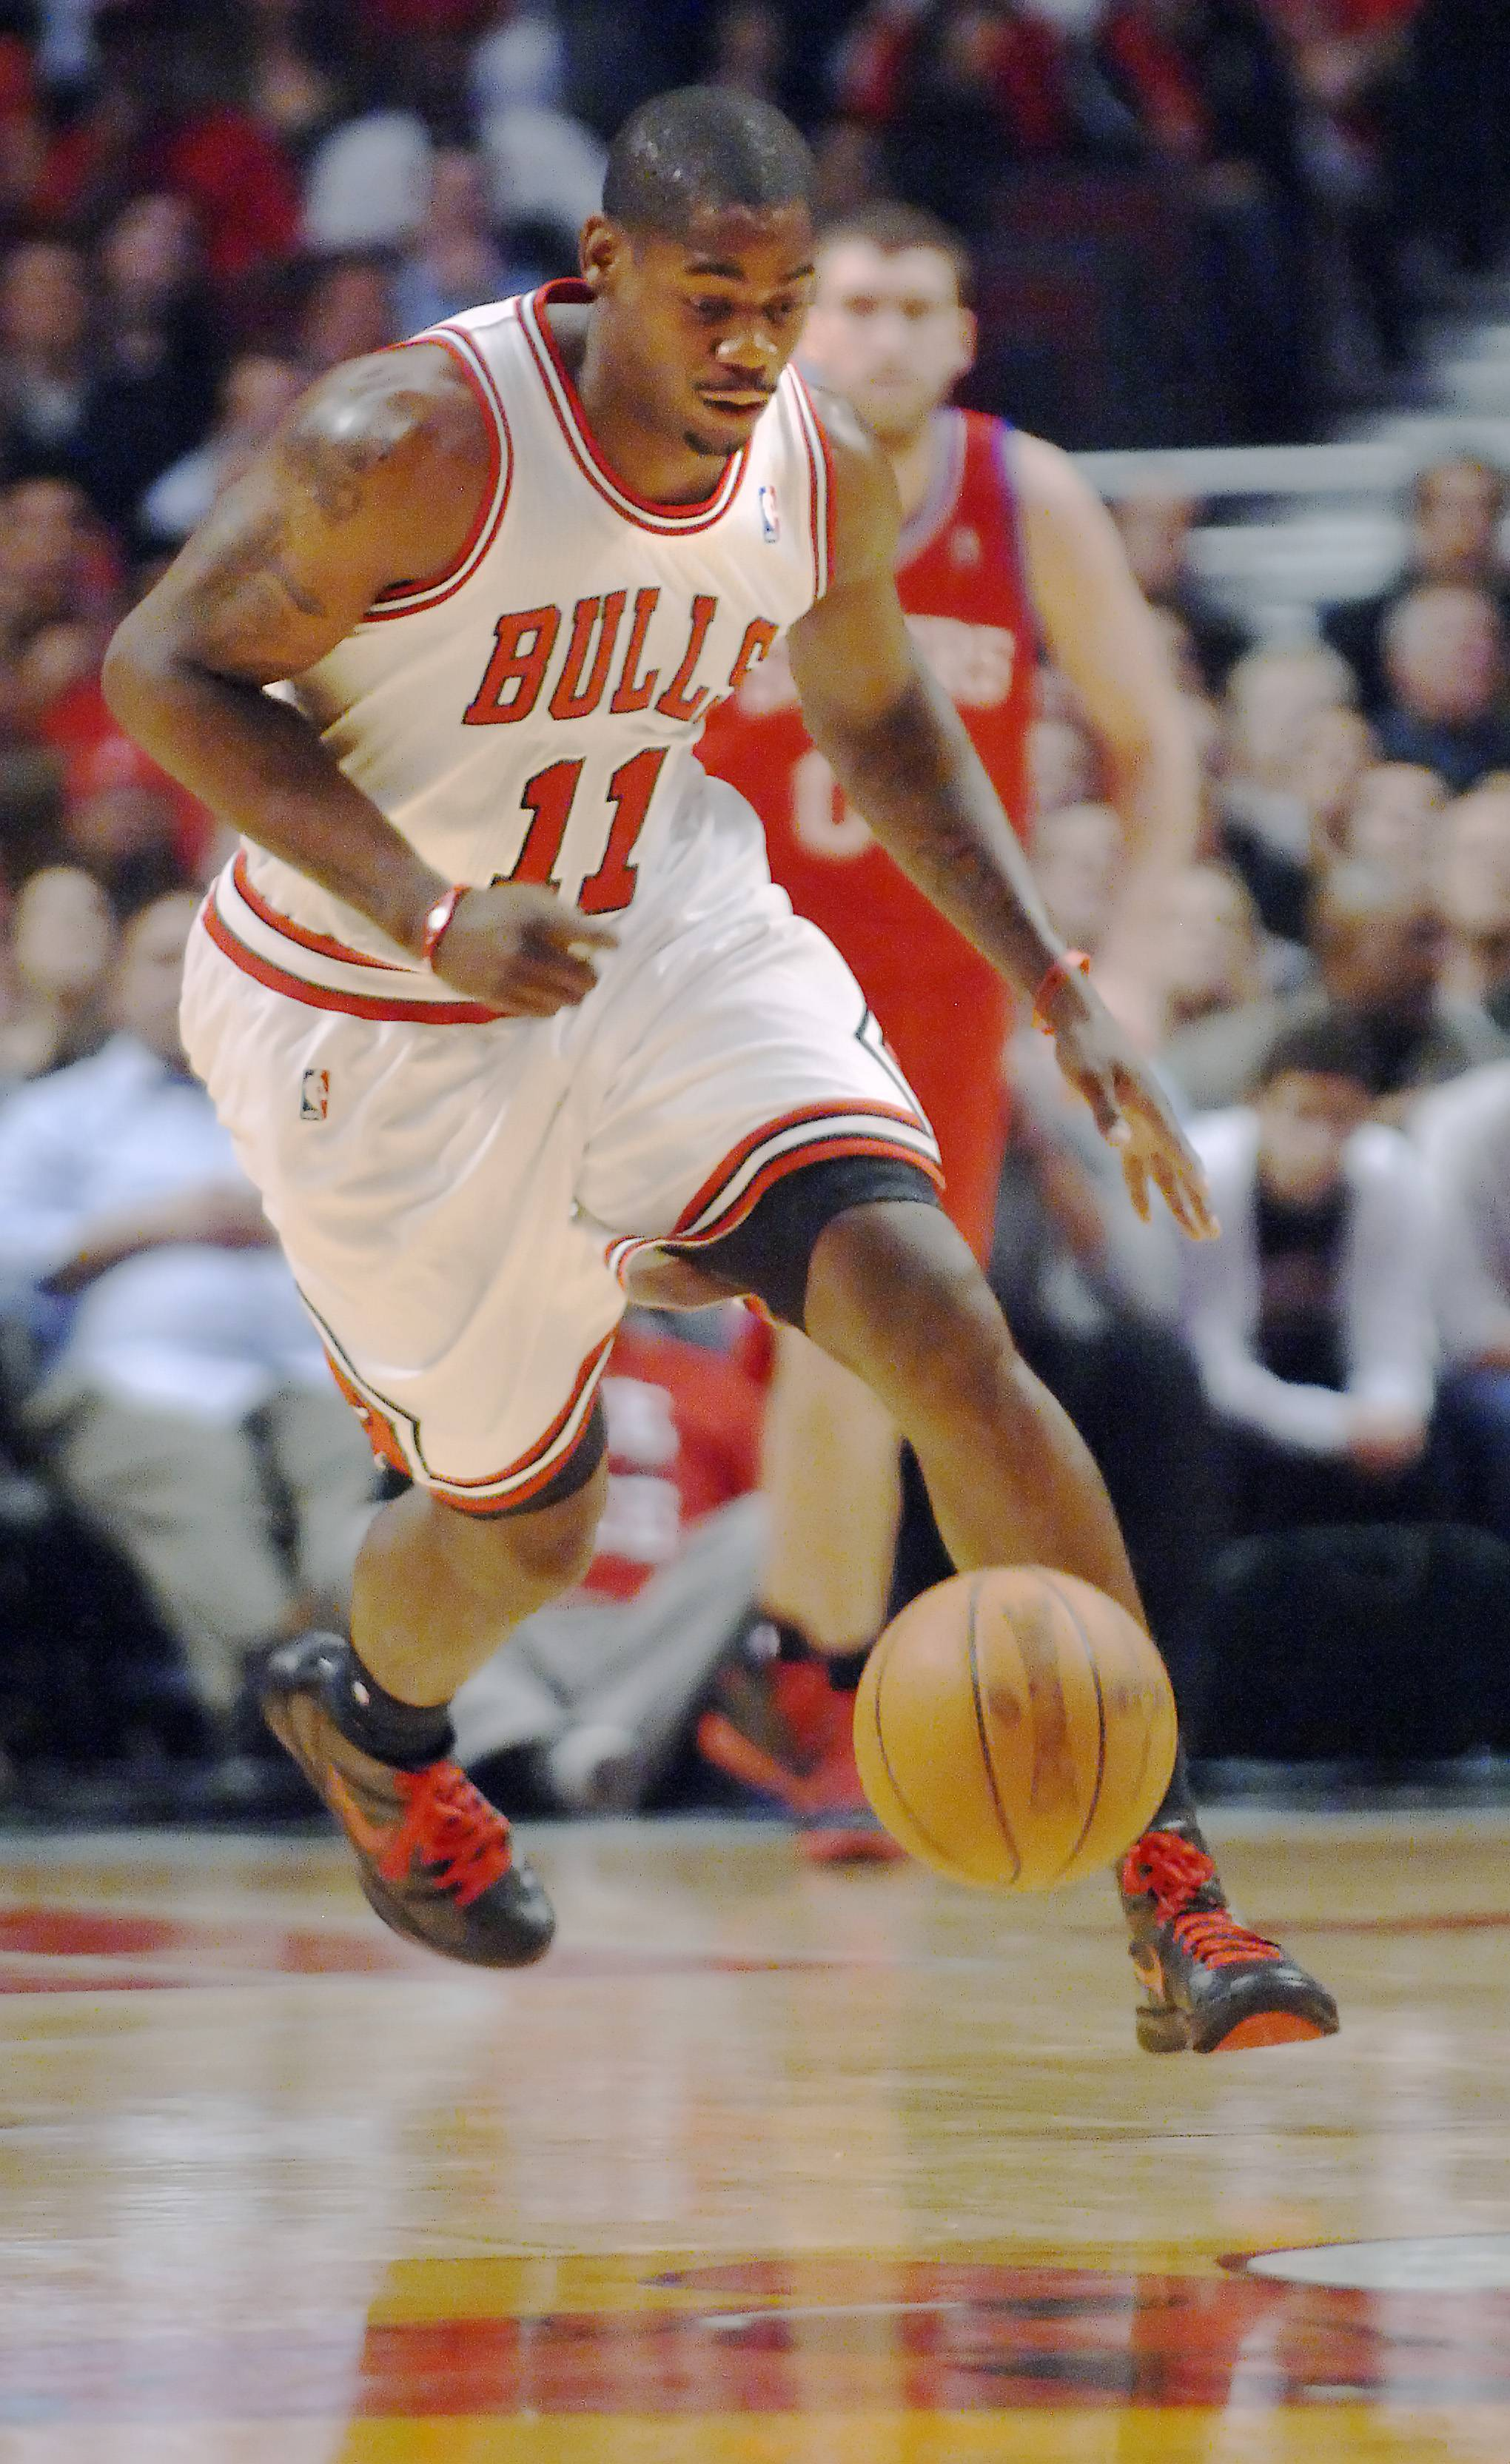 Former Bull Ronnie Brewer worked out at the Berto Center on Thursday, according to CSN Chicago. He is among those who the Bulls will consider signing for a playoff run.